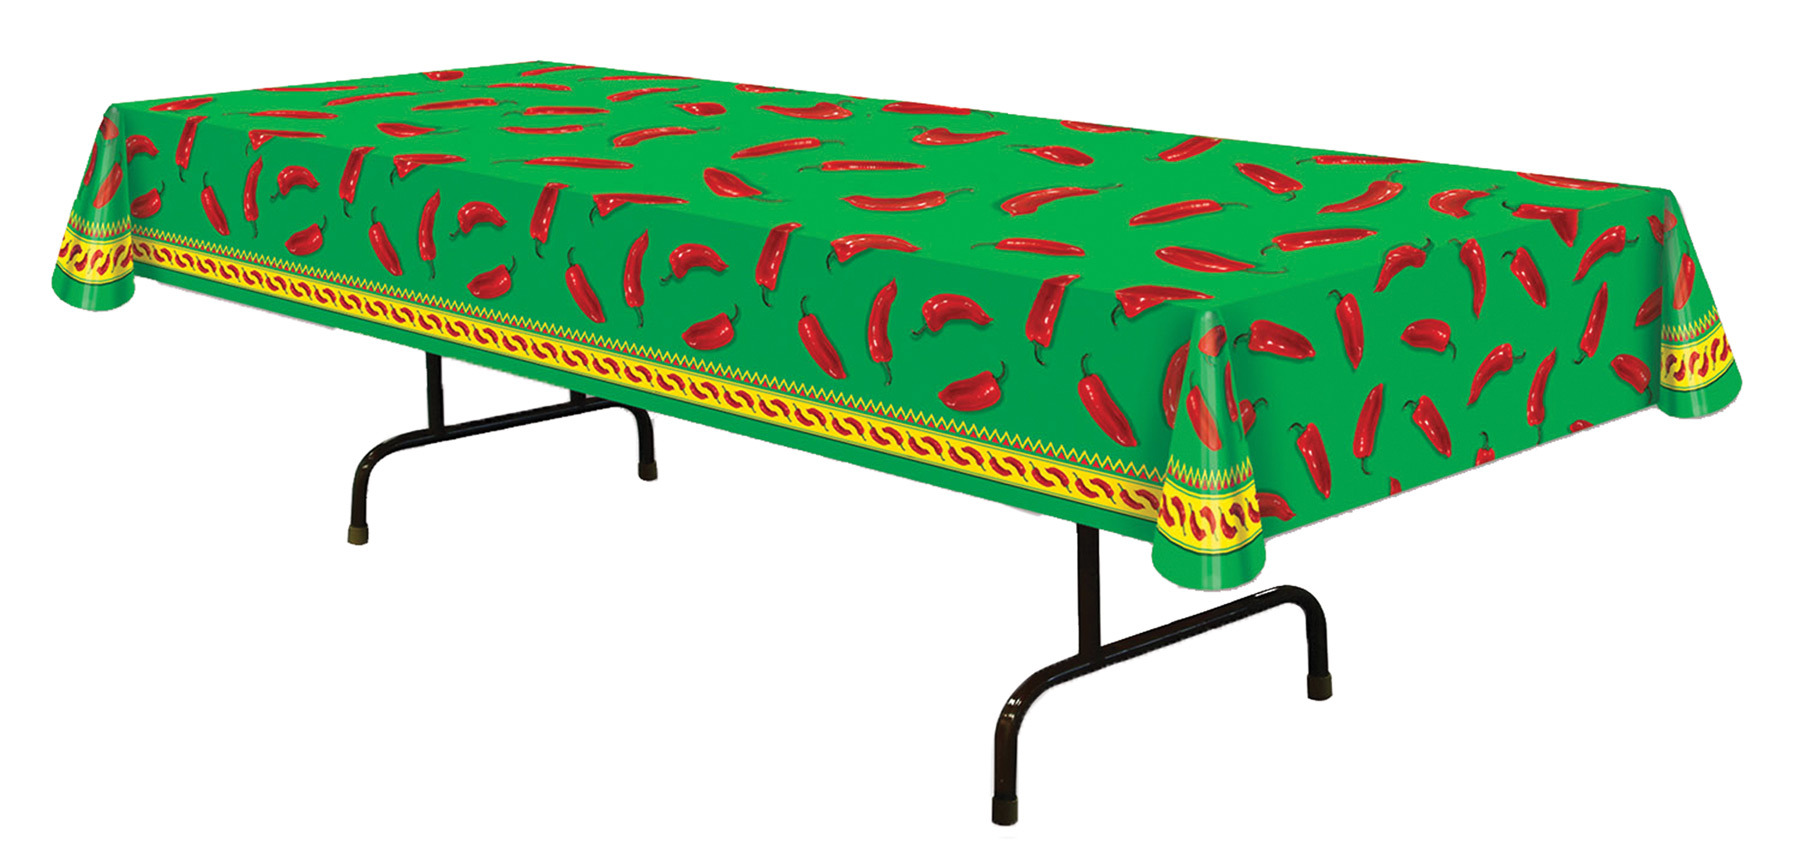 Featured Image for Chili Pepper Table Cover